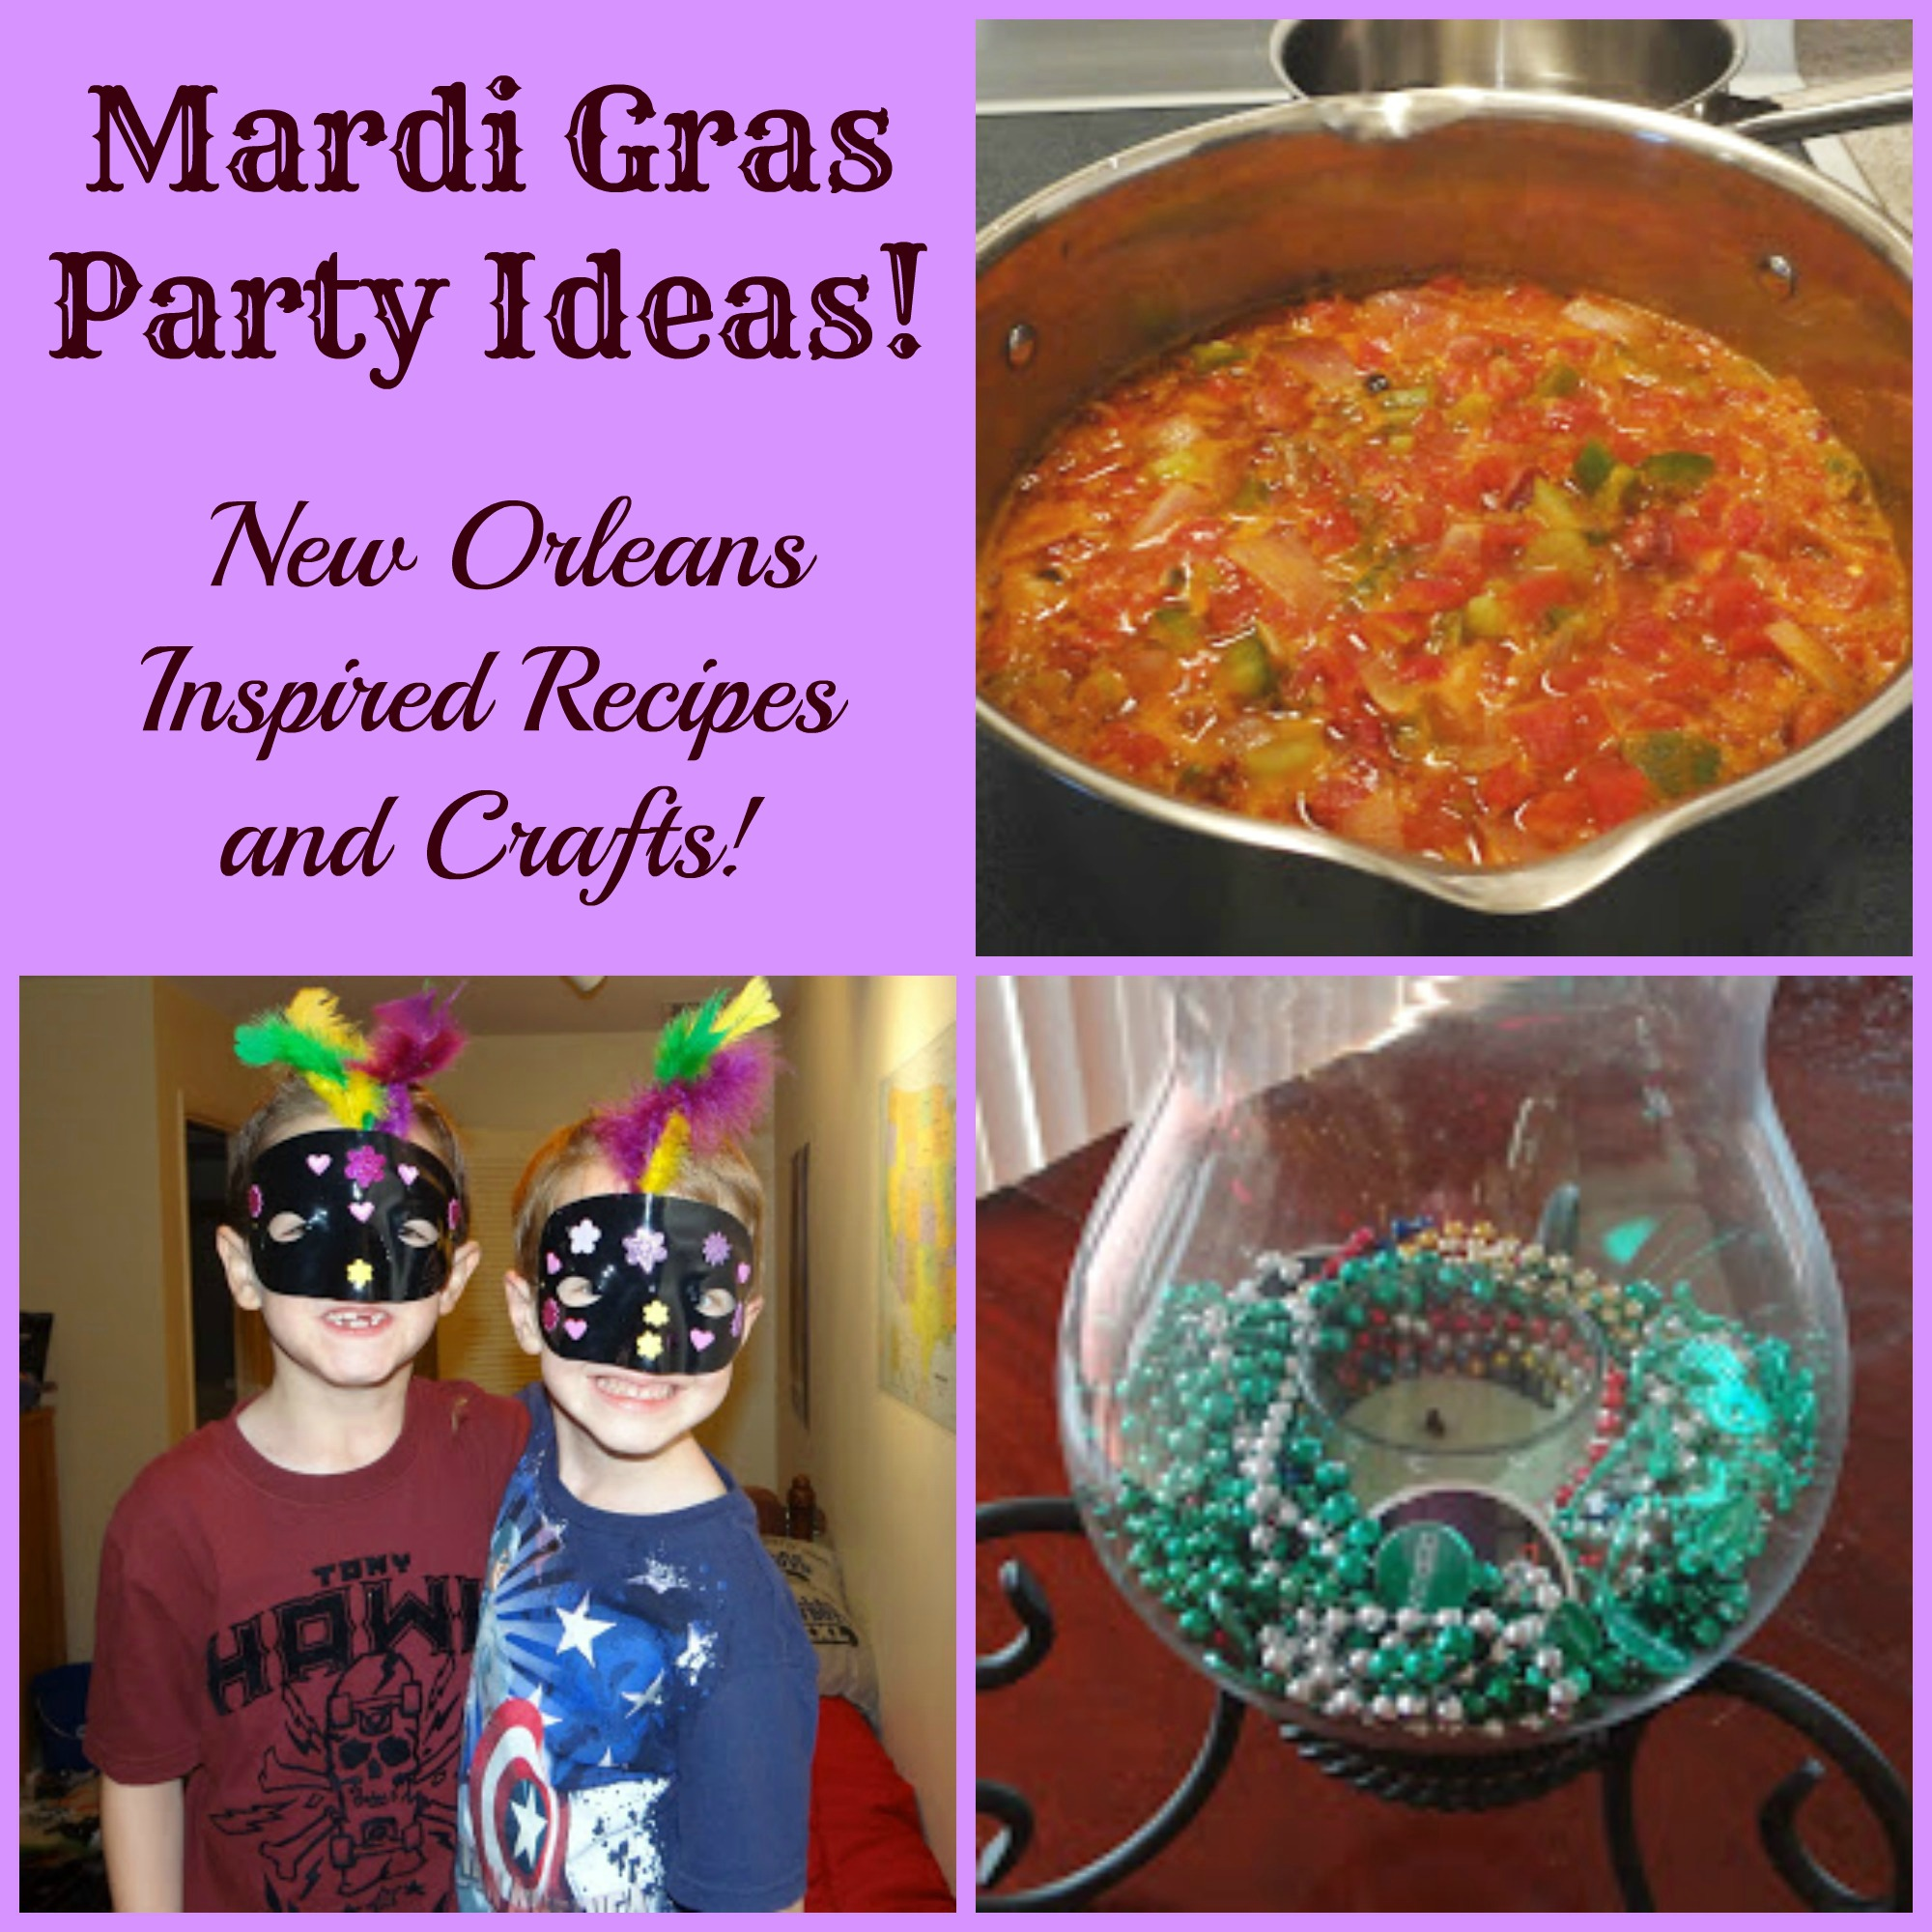 Mardi gras party ideas we made new orleans inspired recipes and mardi gras party ideas we made new orleans inspired recipes and crafts fun learning life forumfinder Image collections